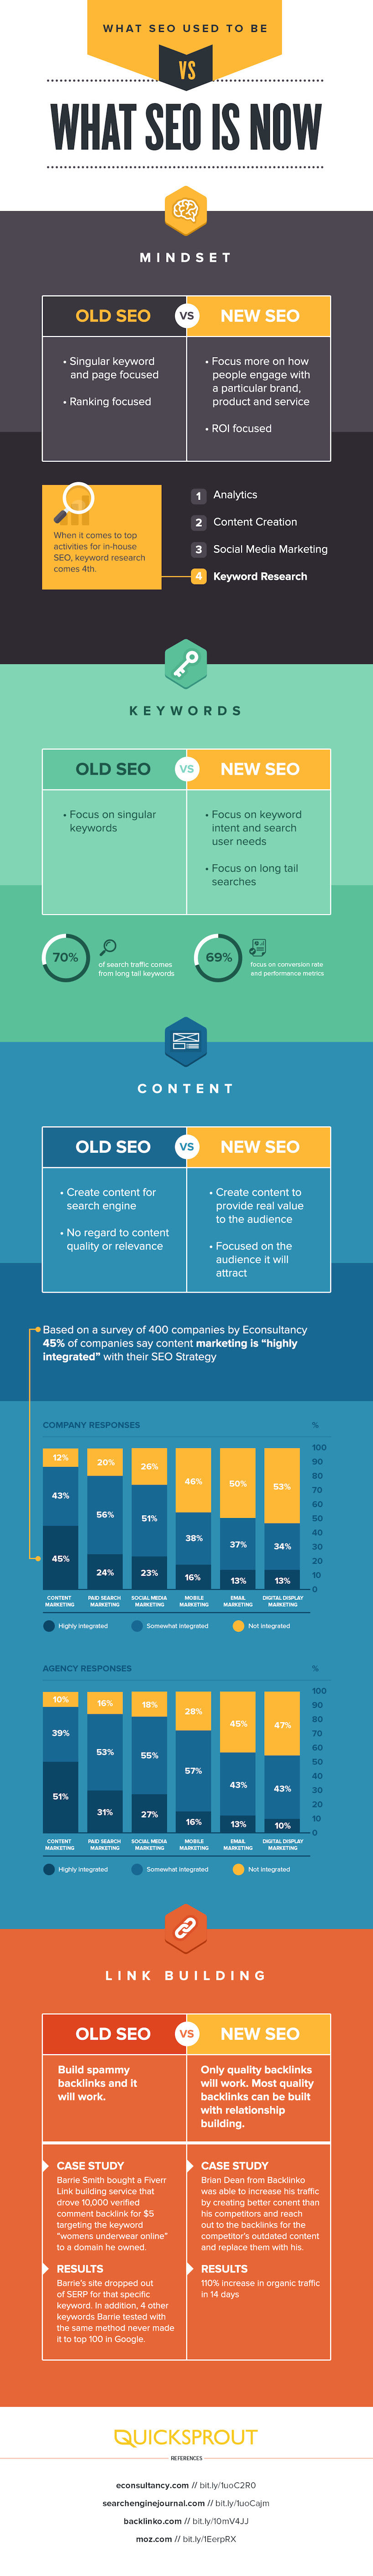 Old Search engine optimization vs new: Content and relationship are kings